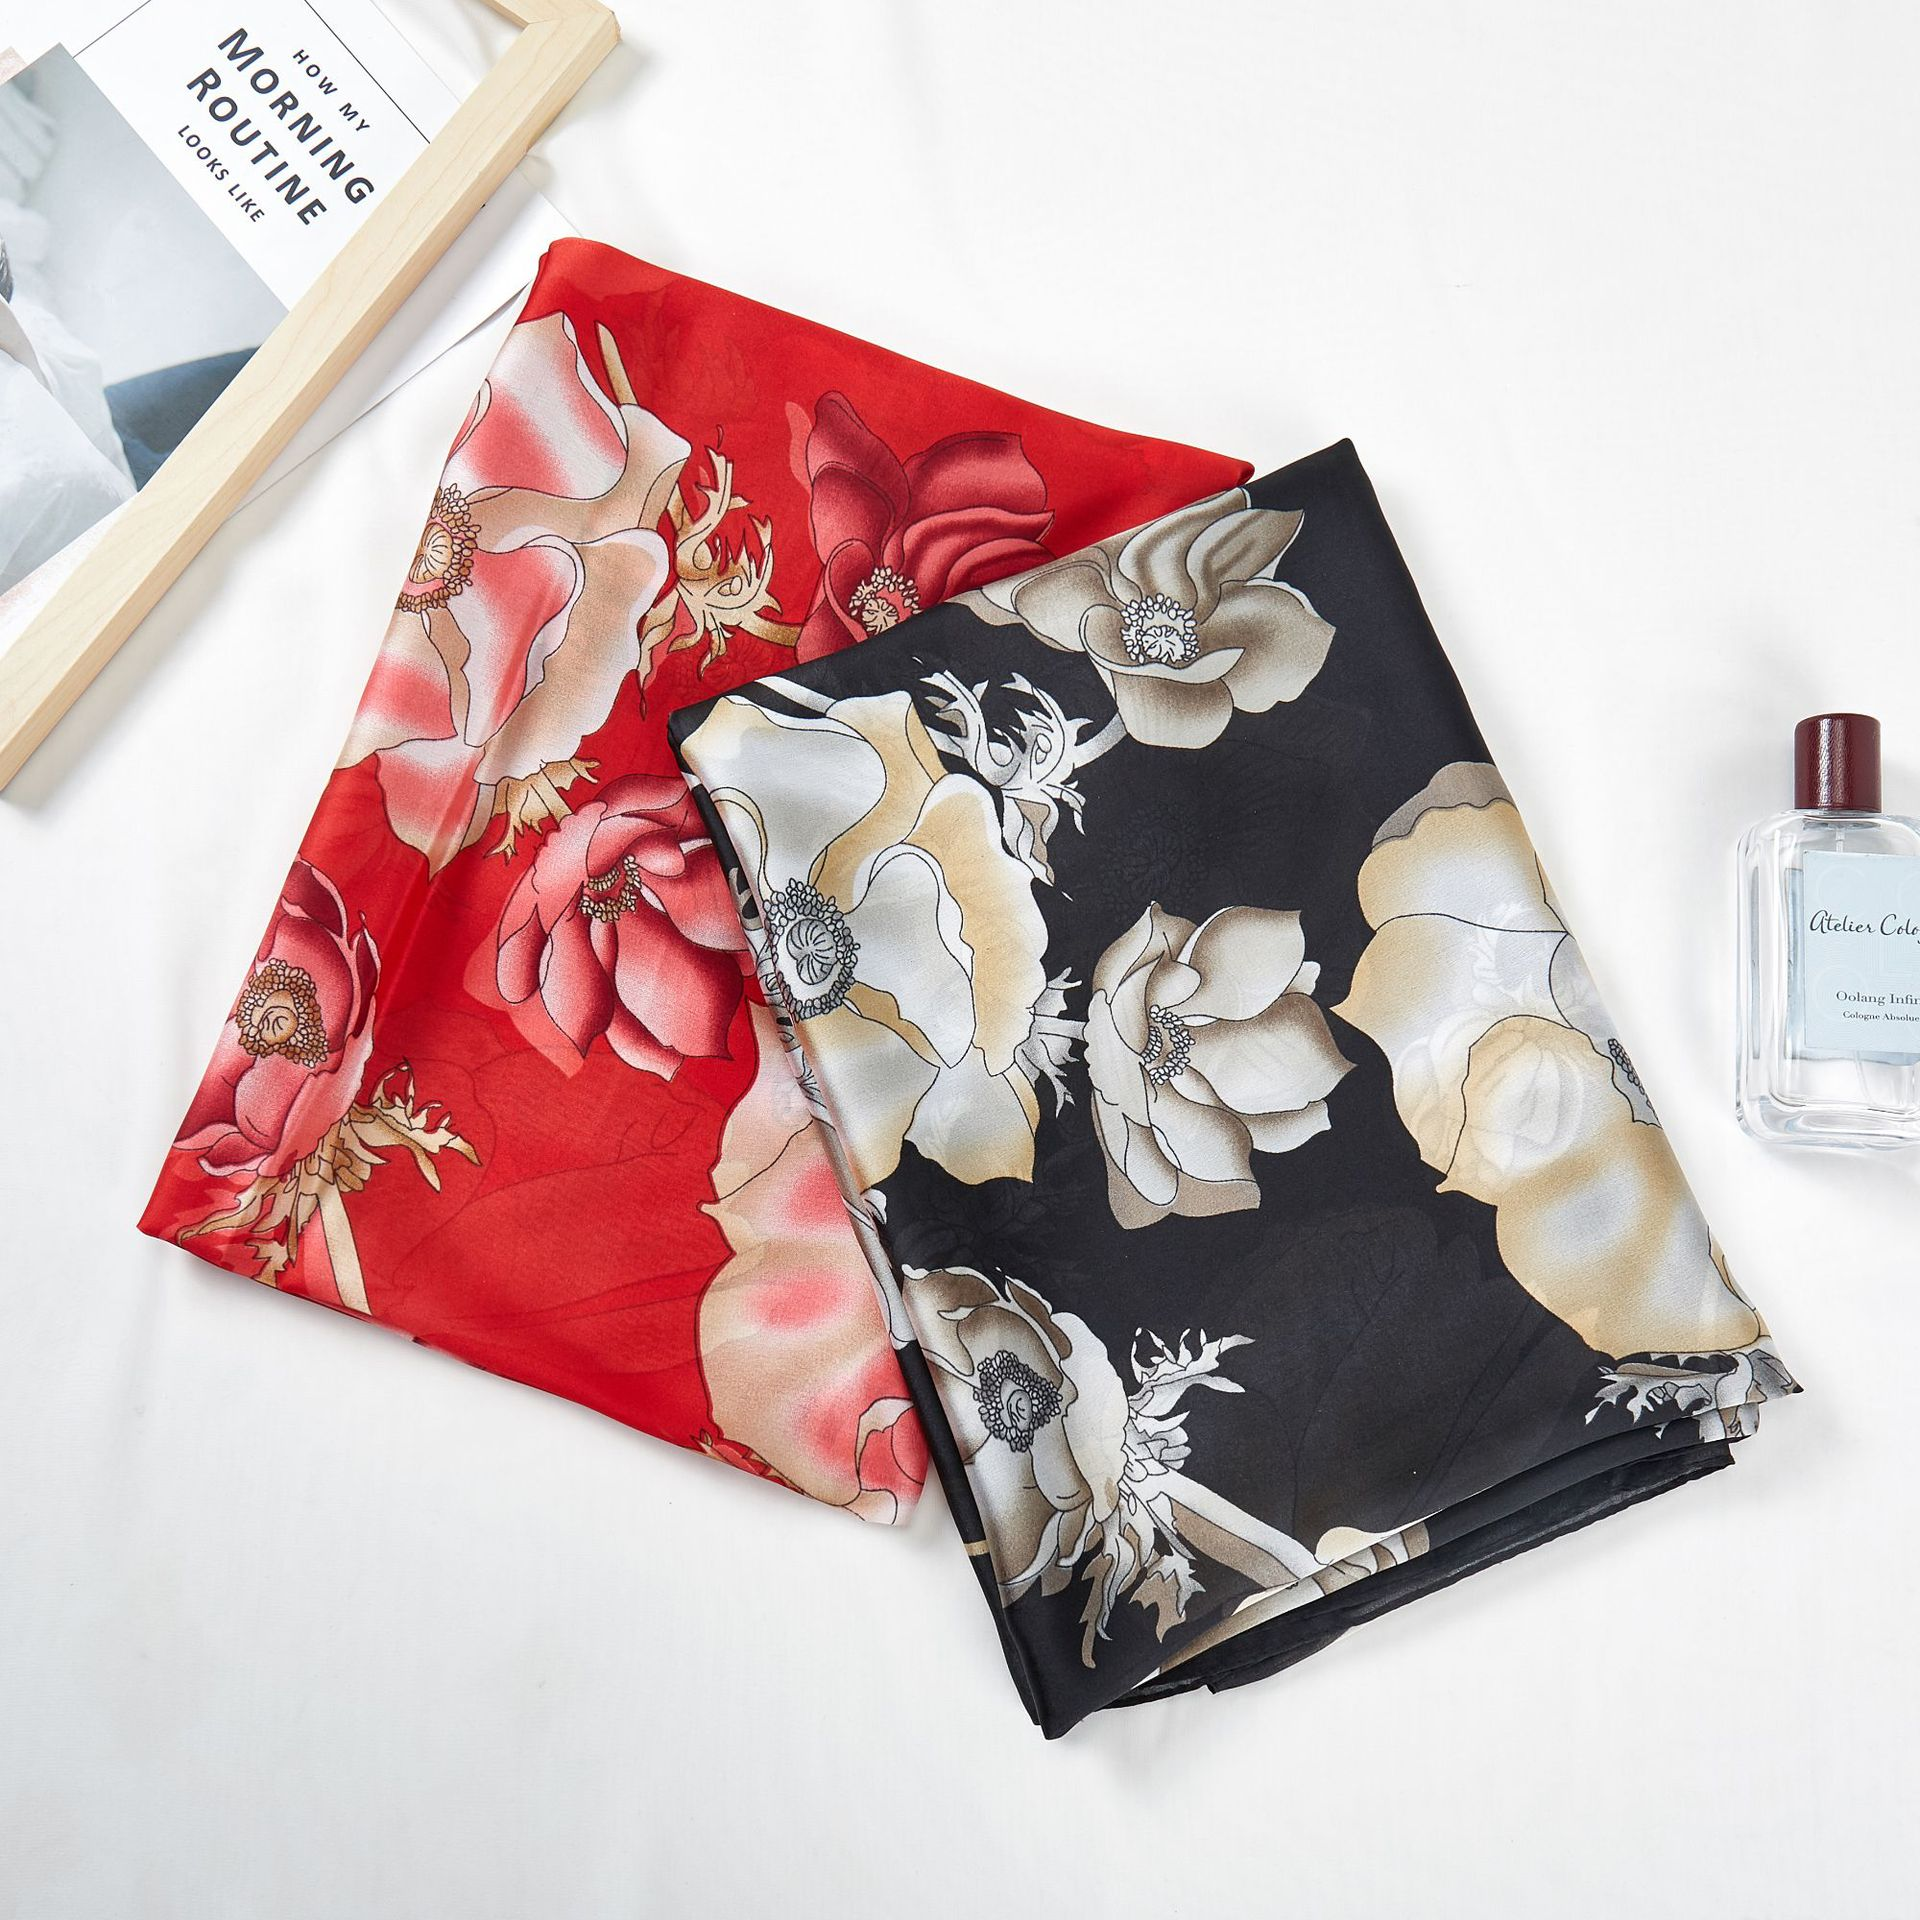 New Famous Silk Scarf, Female Flower,Long Recreational Sunscreen Beach Scarf and Shawl